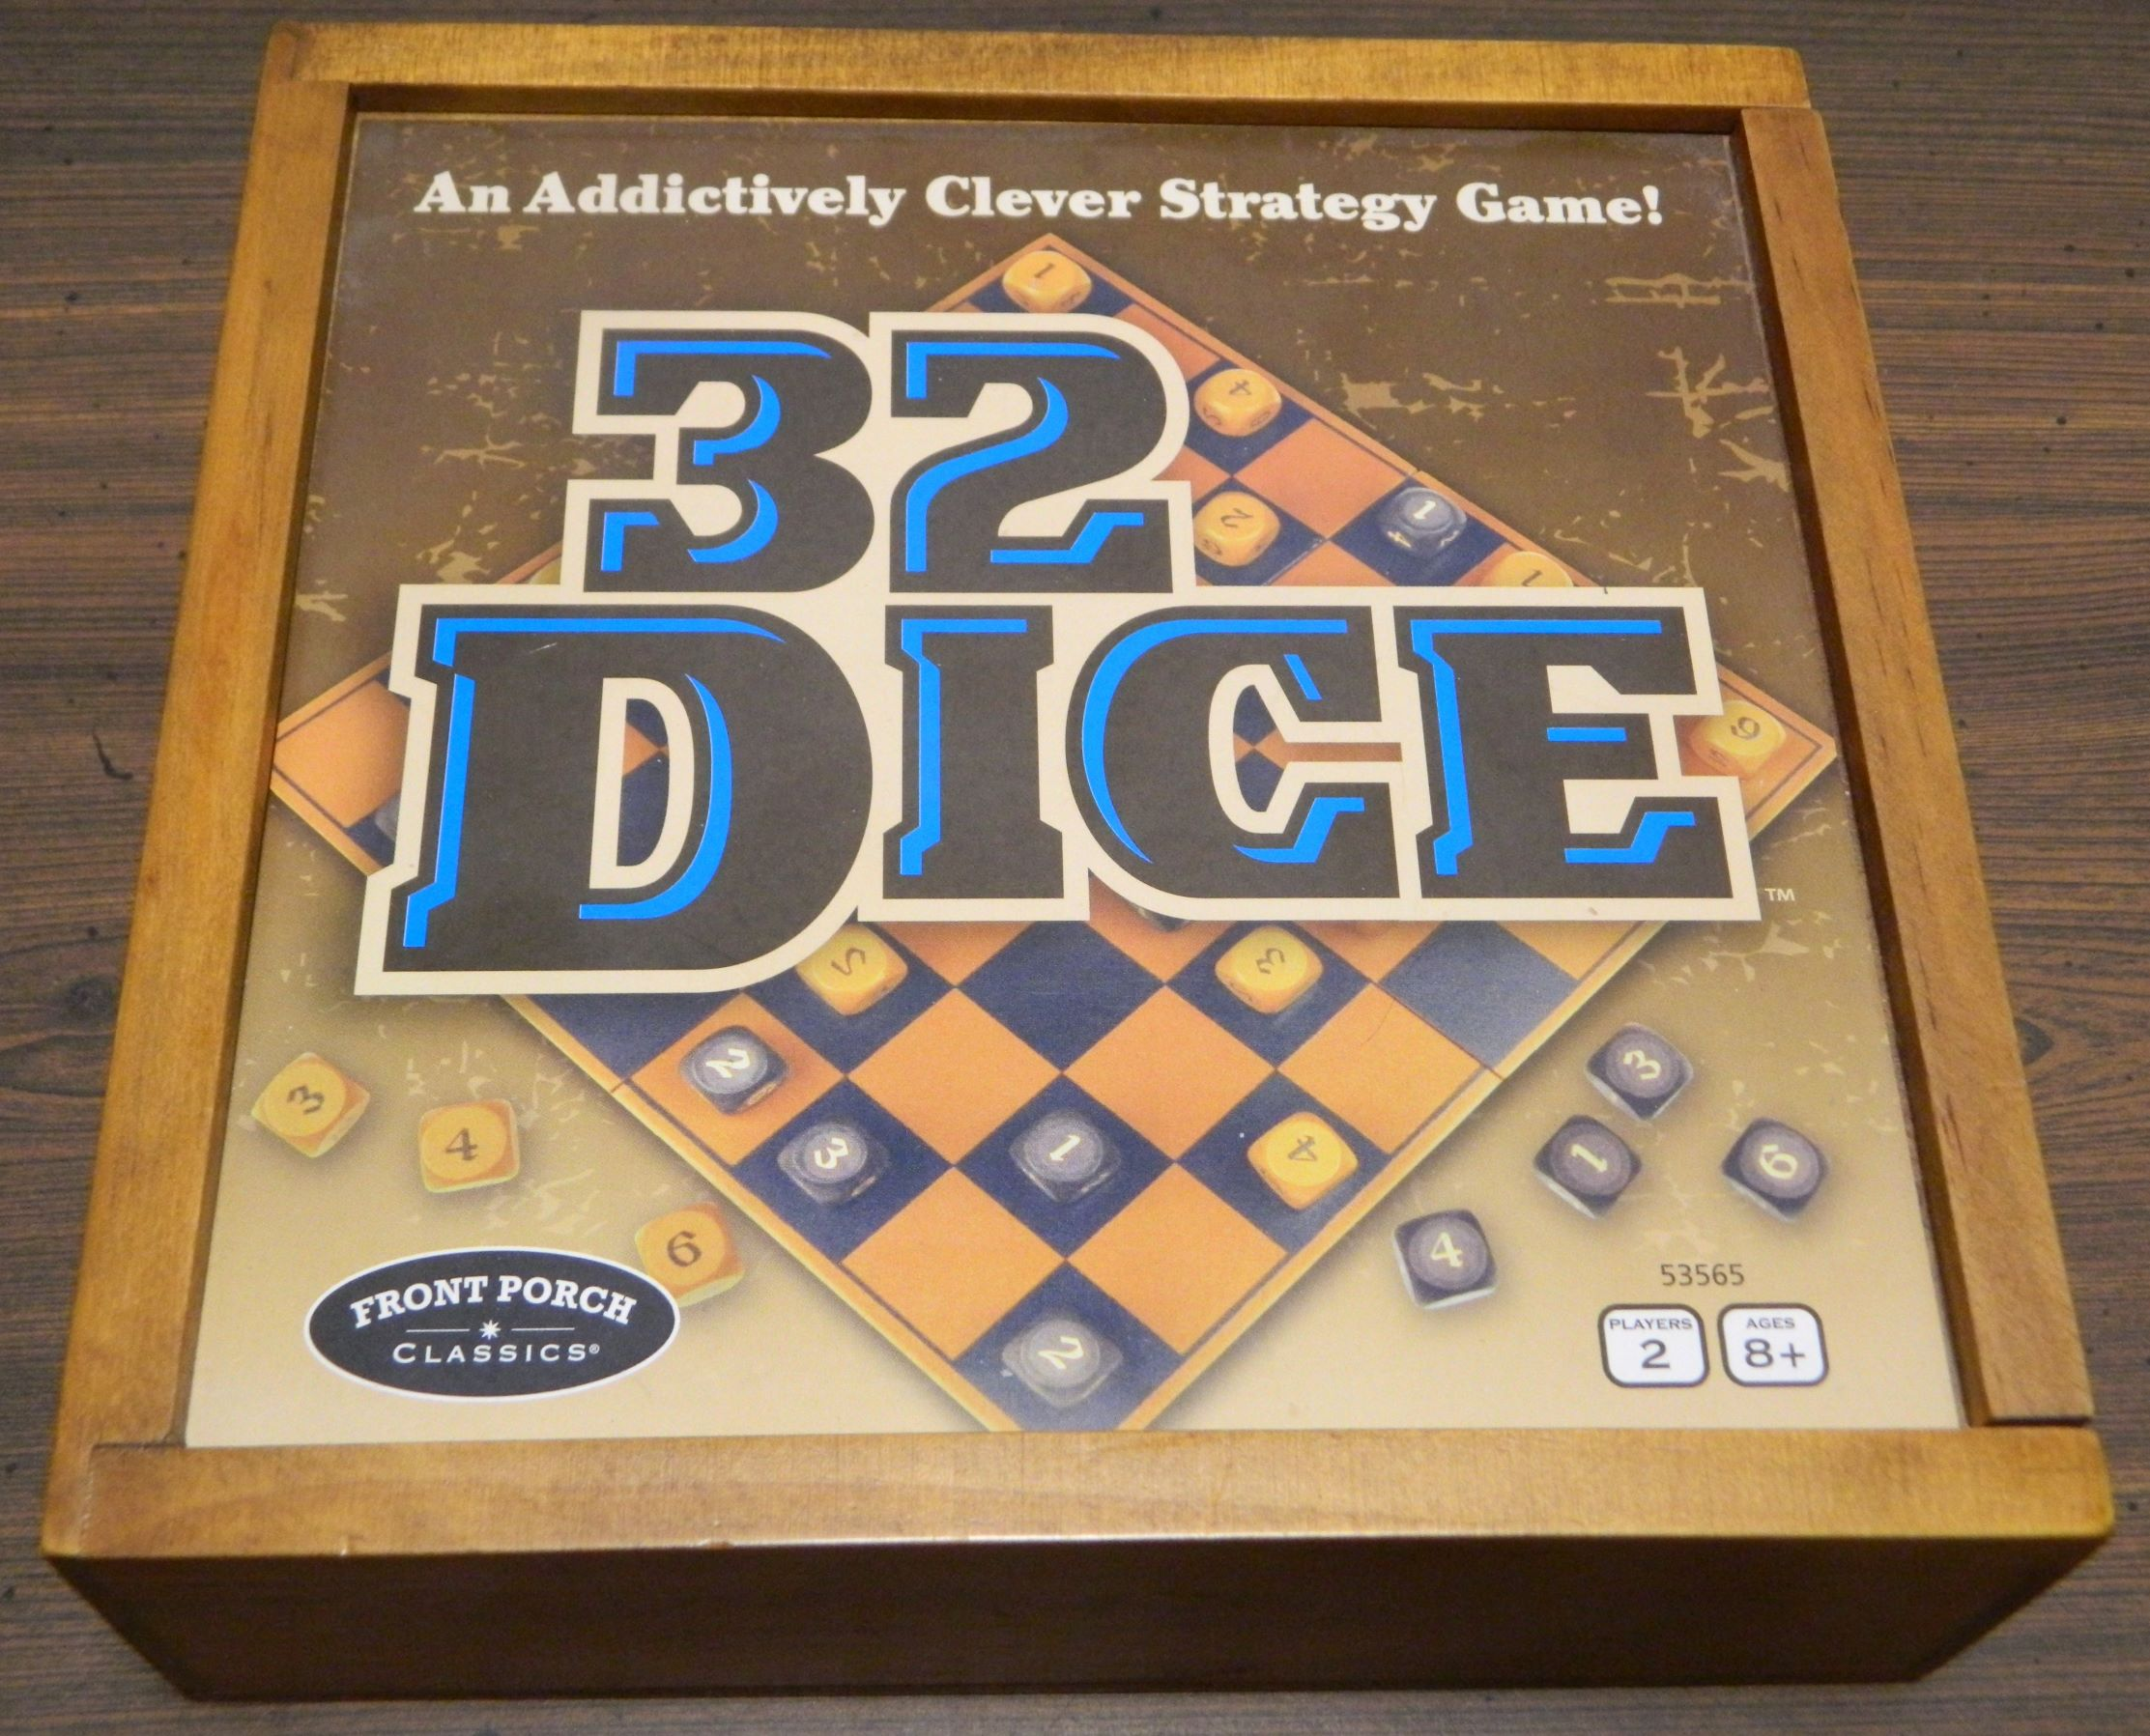 32 Dice Board Game Review And Rules